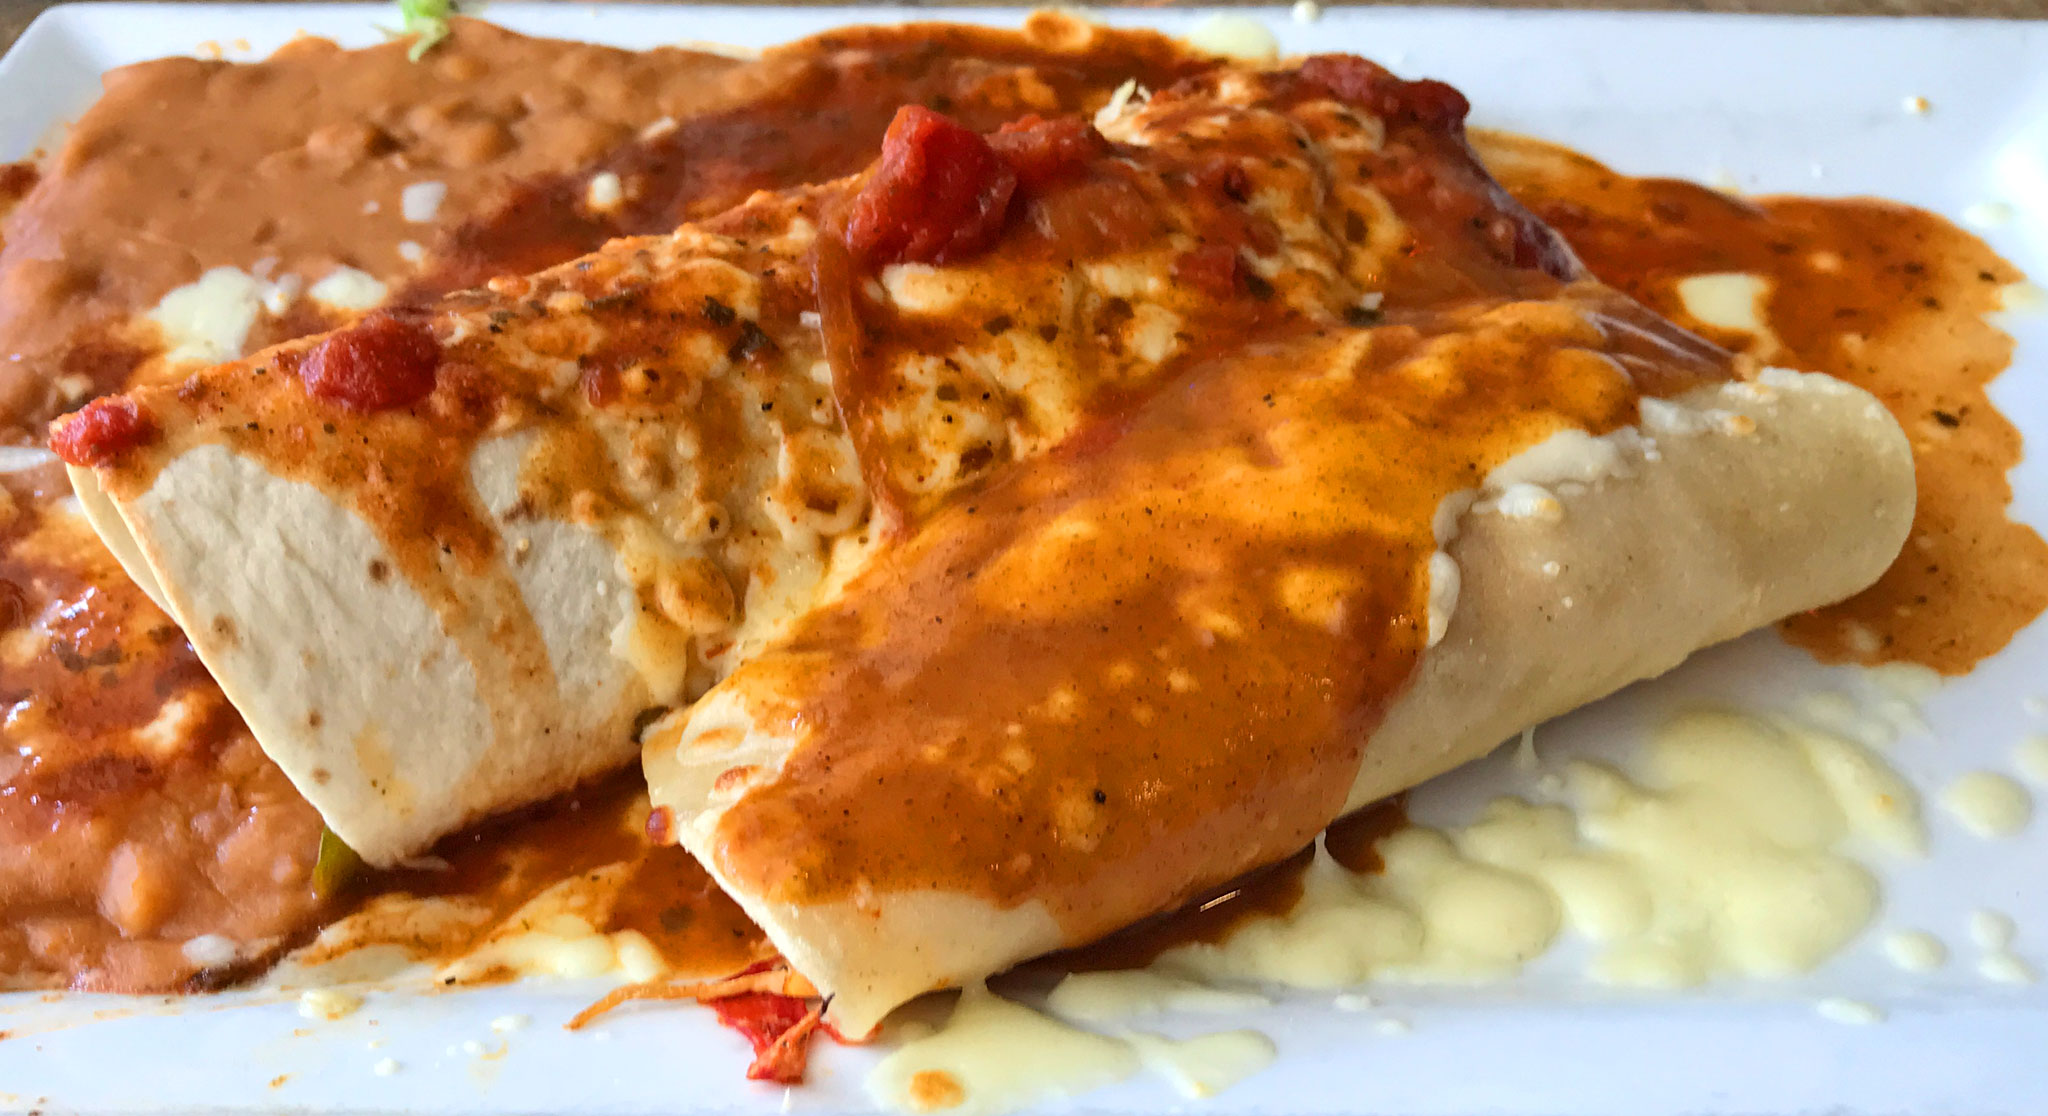 Pork Burrito, Chicken Enchilada, Refried Beans